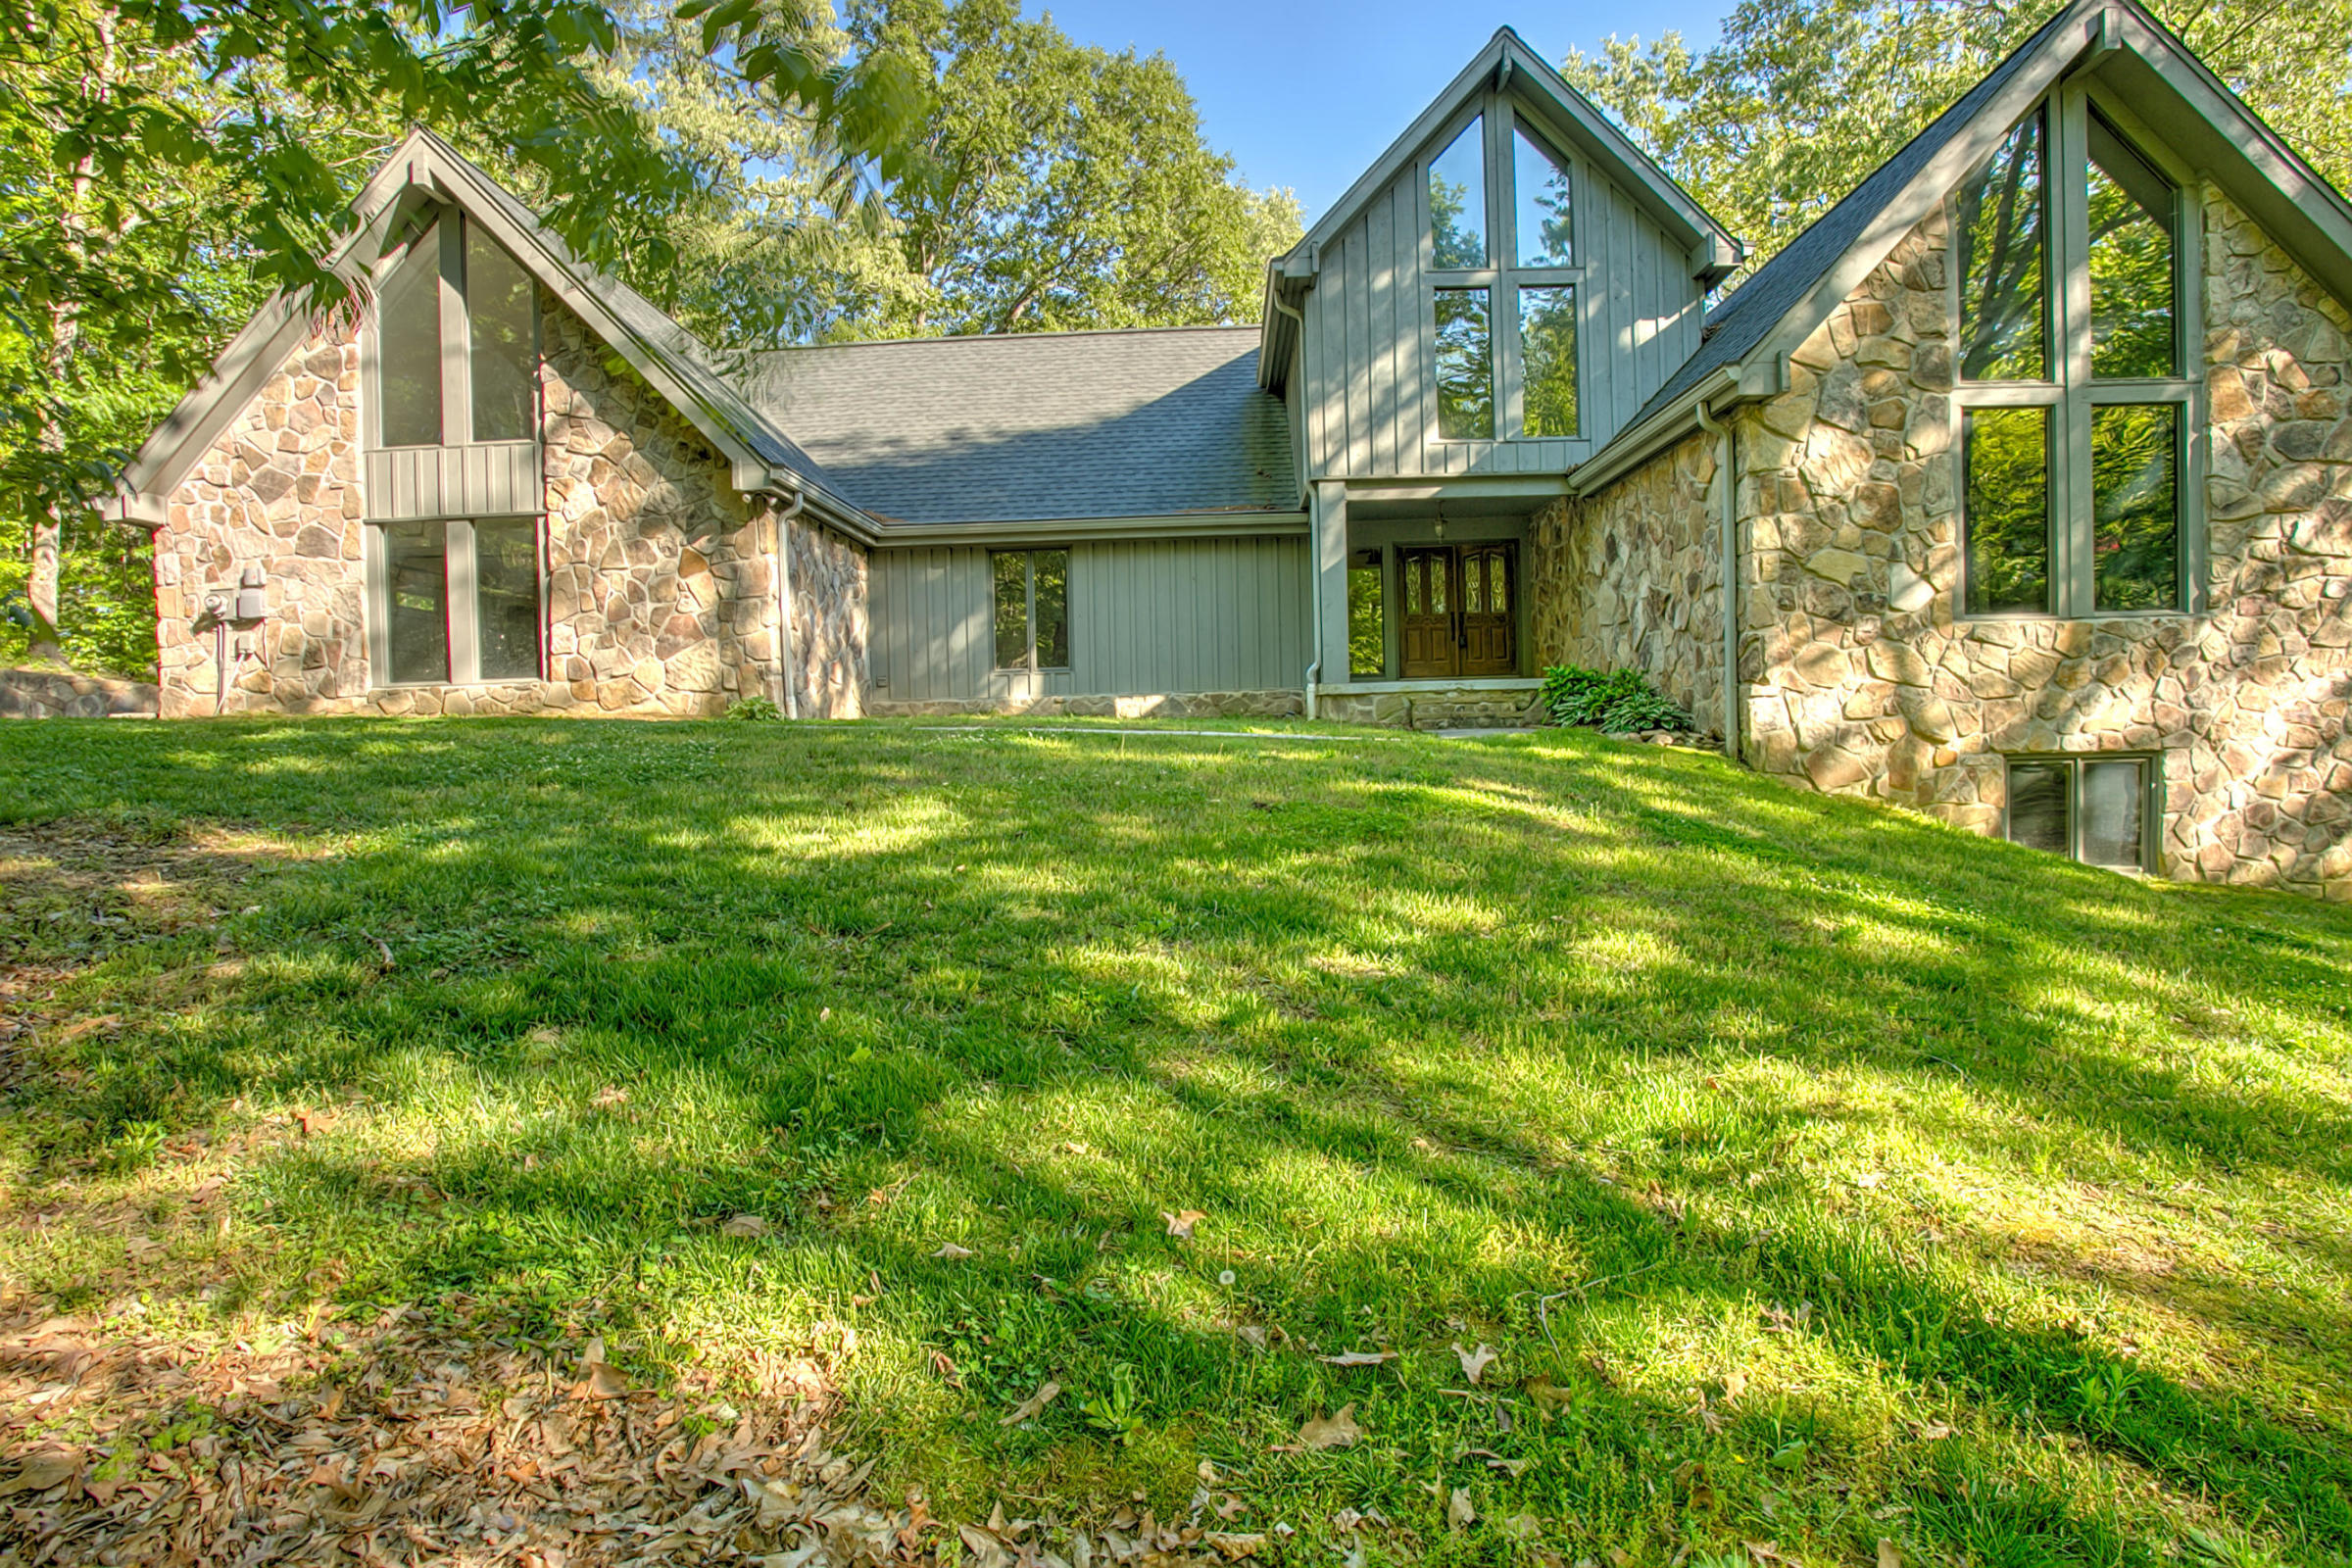 9110 Windstone Dr, Ooltewah, TN 37363